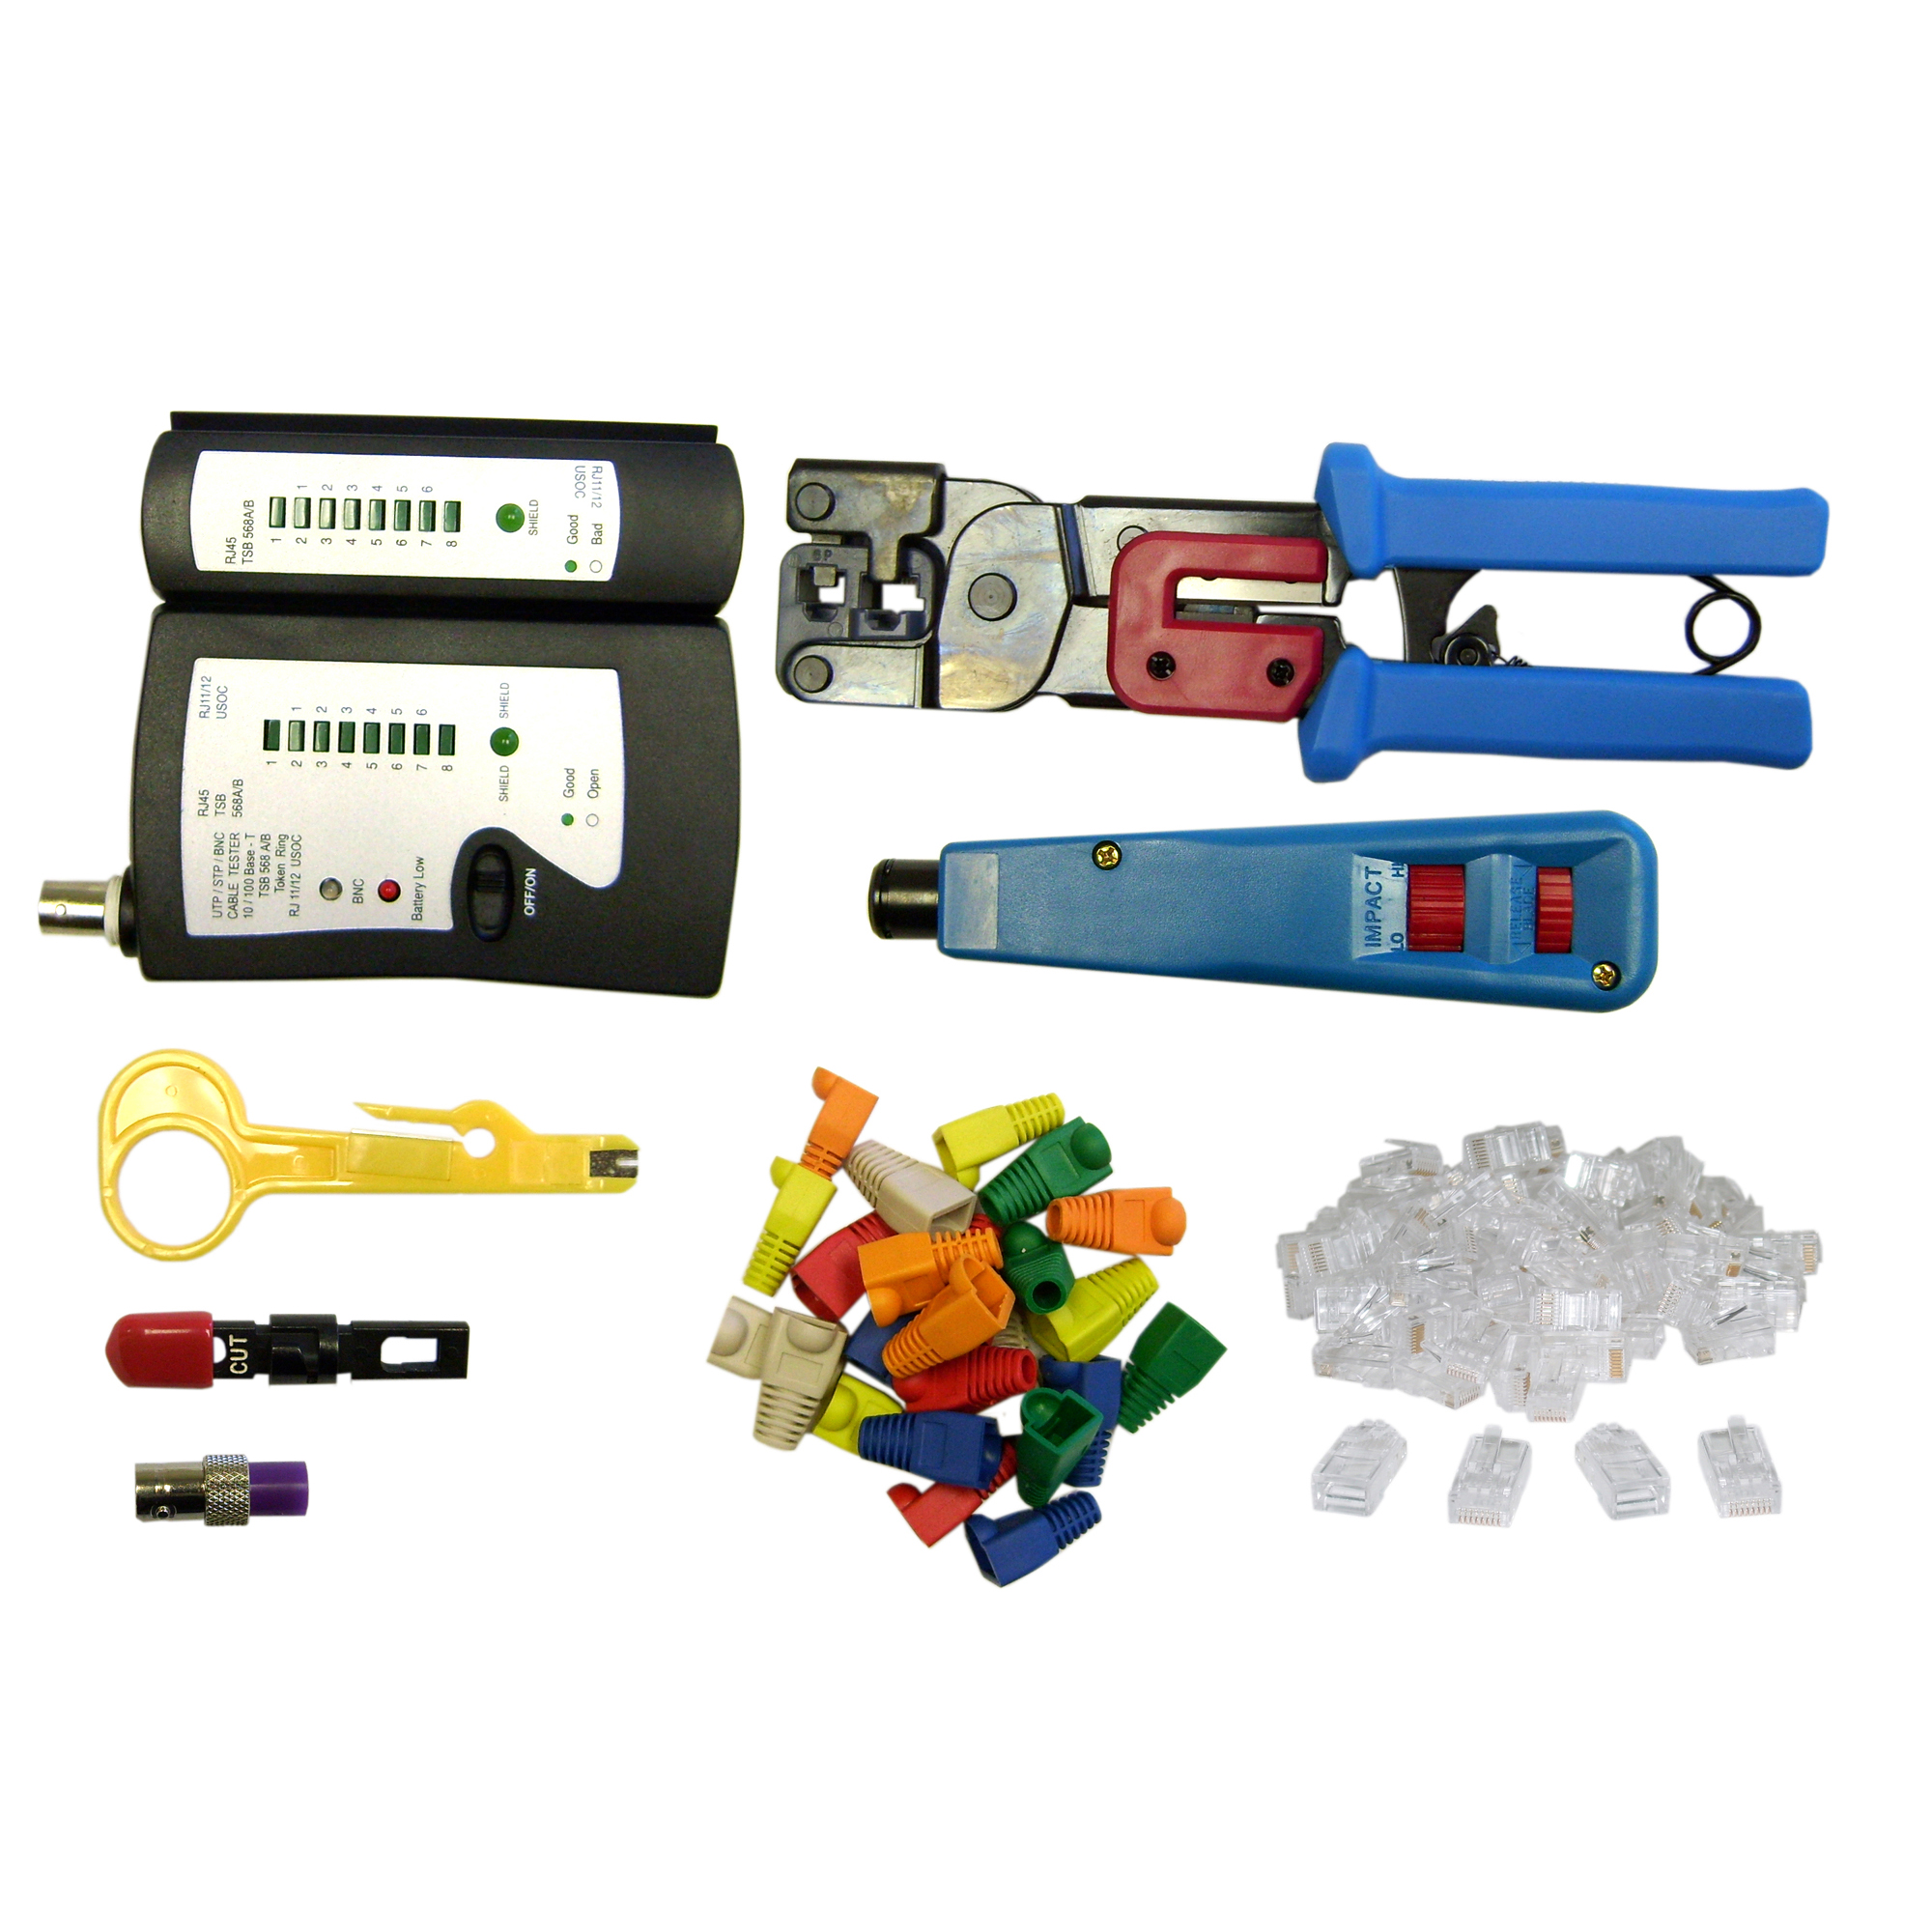 Soho network tester and tool kit 8 pieces for Canape network testing tool